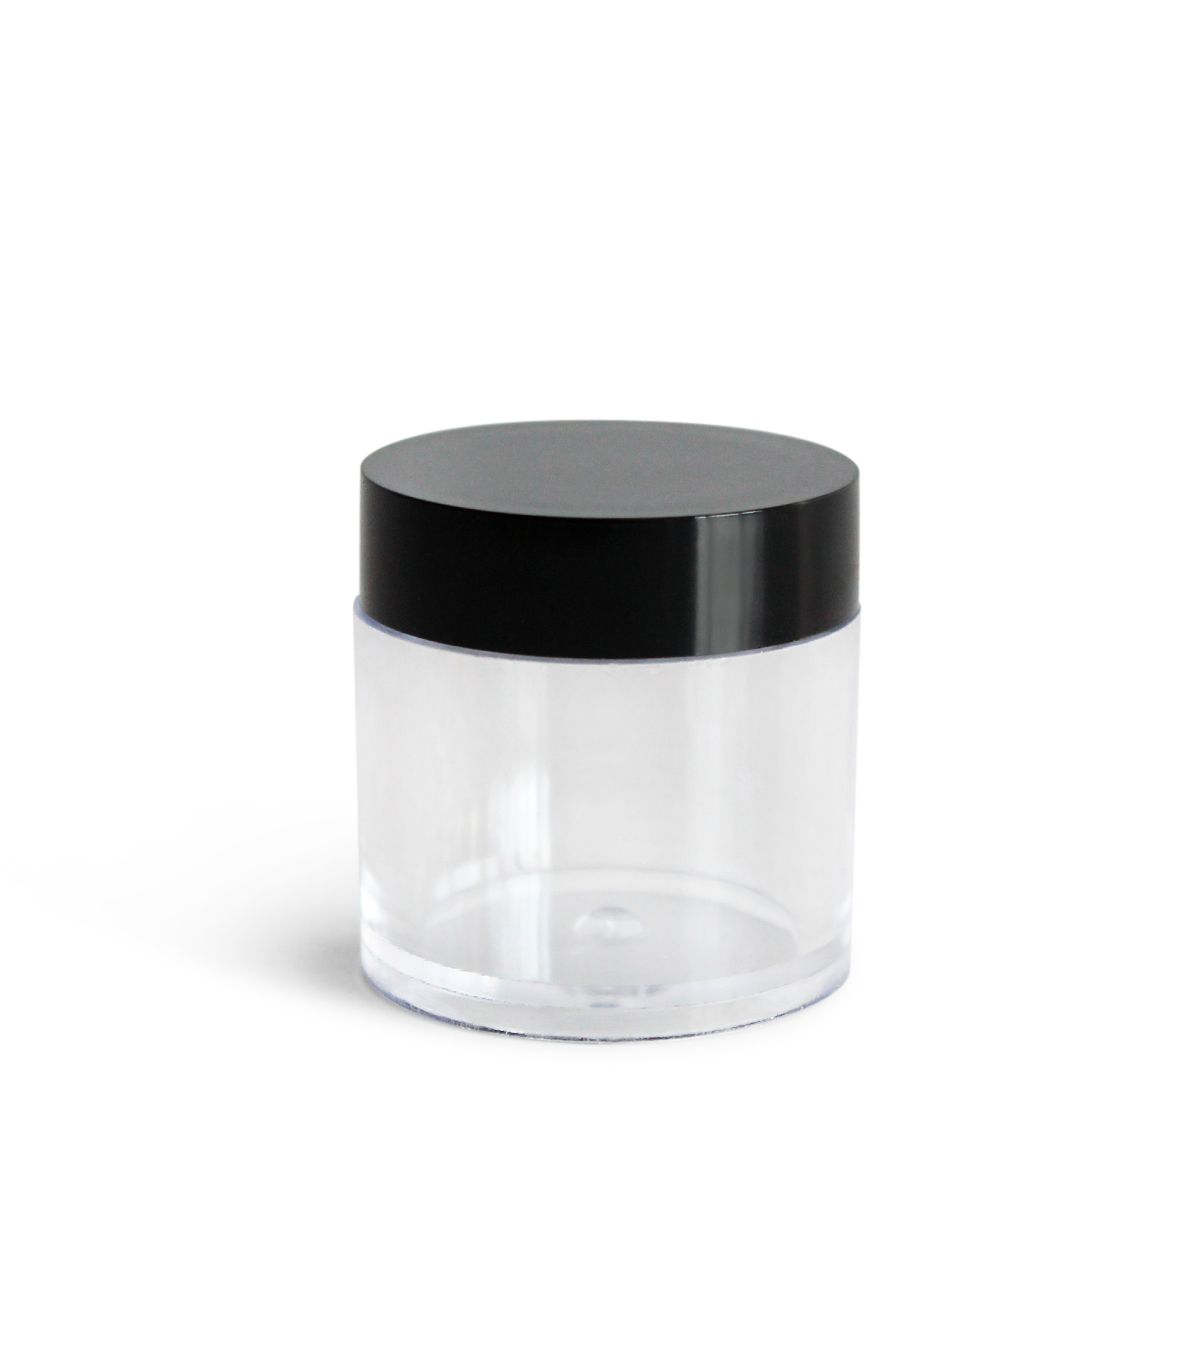 Fab Lab Round Plastic Containers with Black Lids 12/Pkg